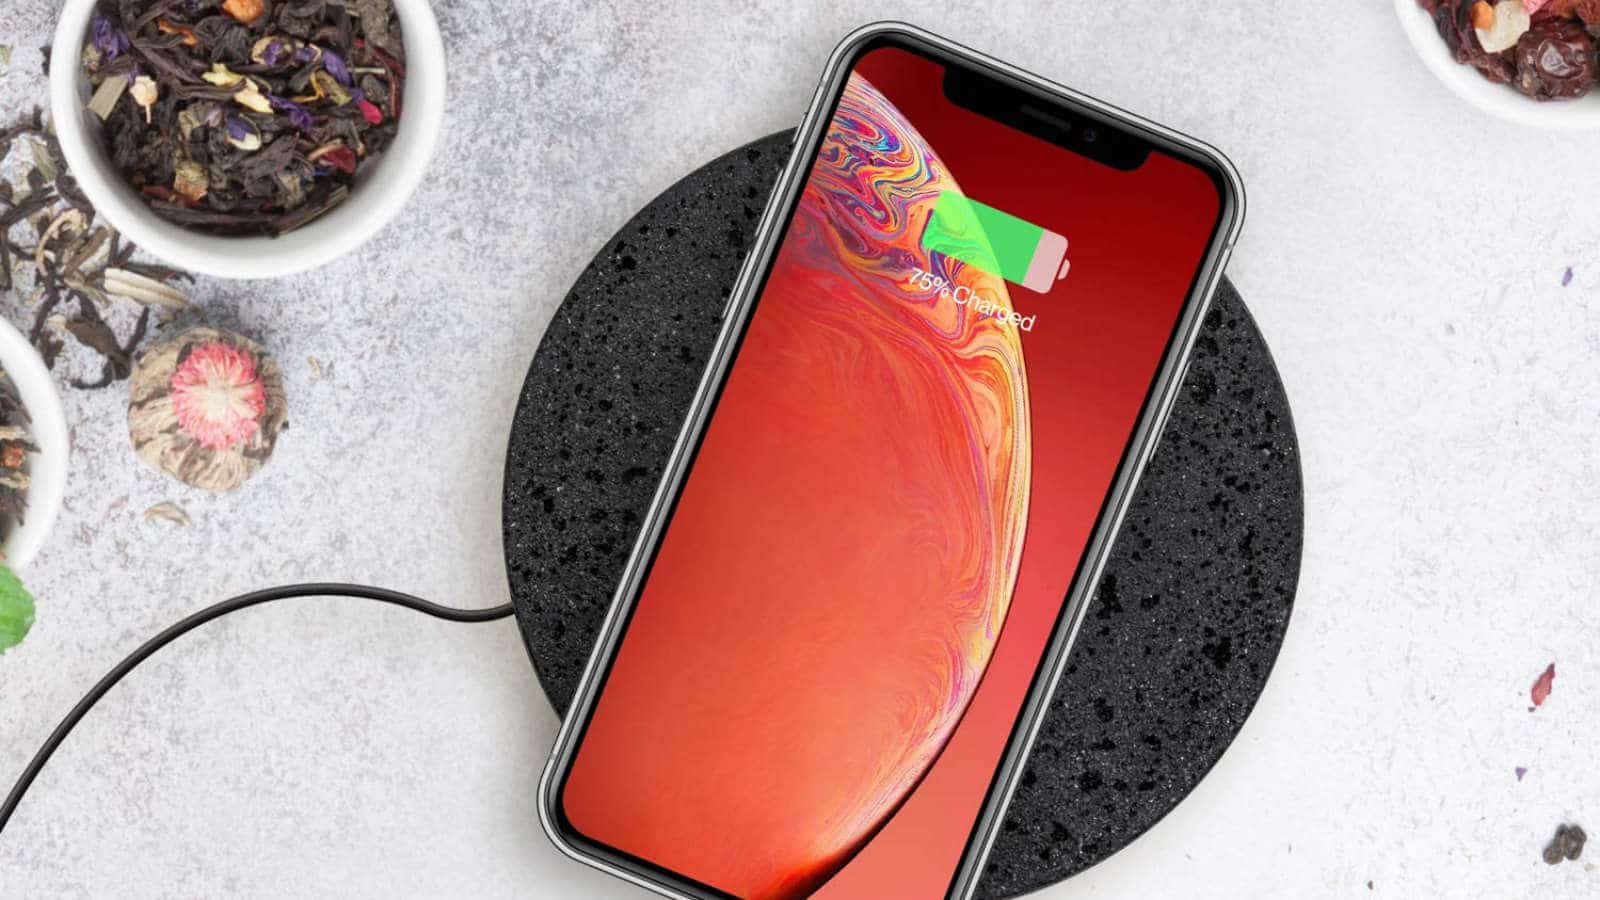 eggtronic wireless charging stone on table